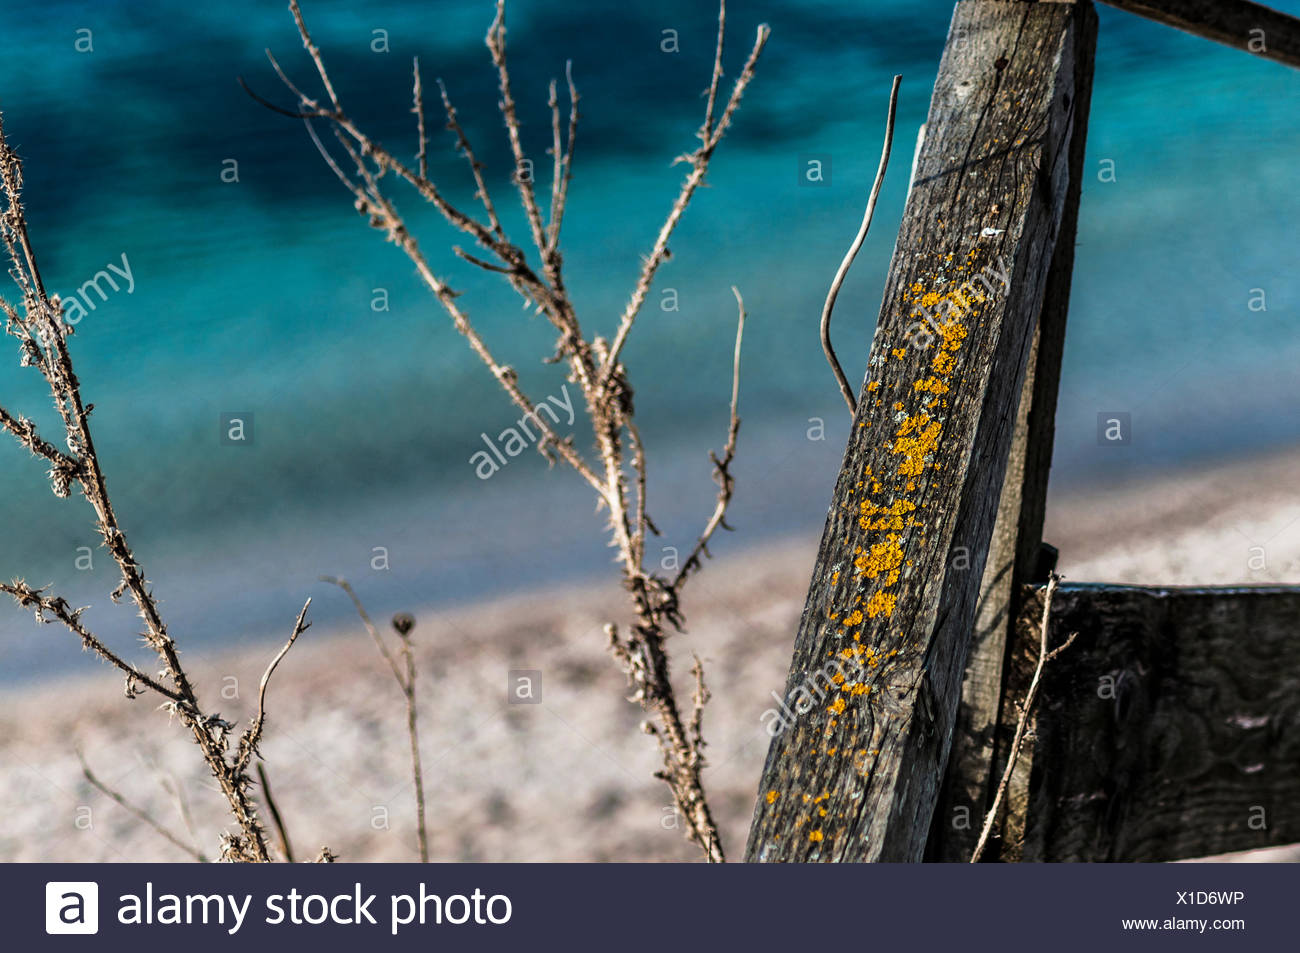 Dried Plants At Beach - Stock Image